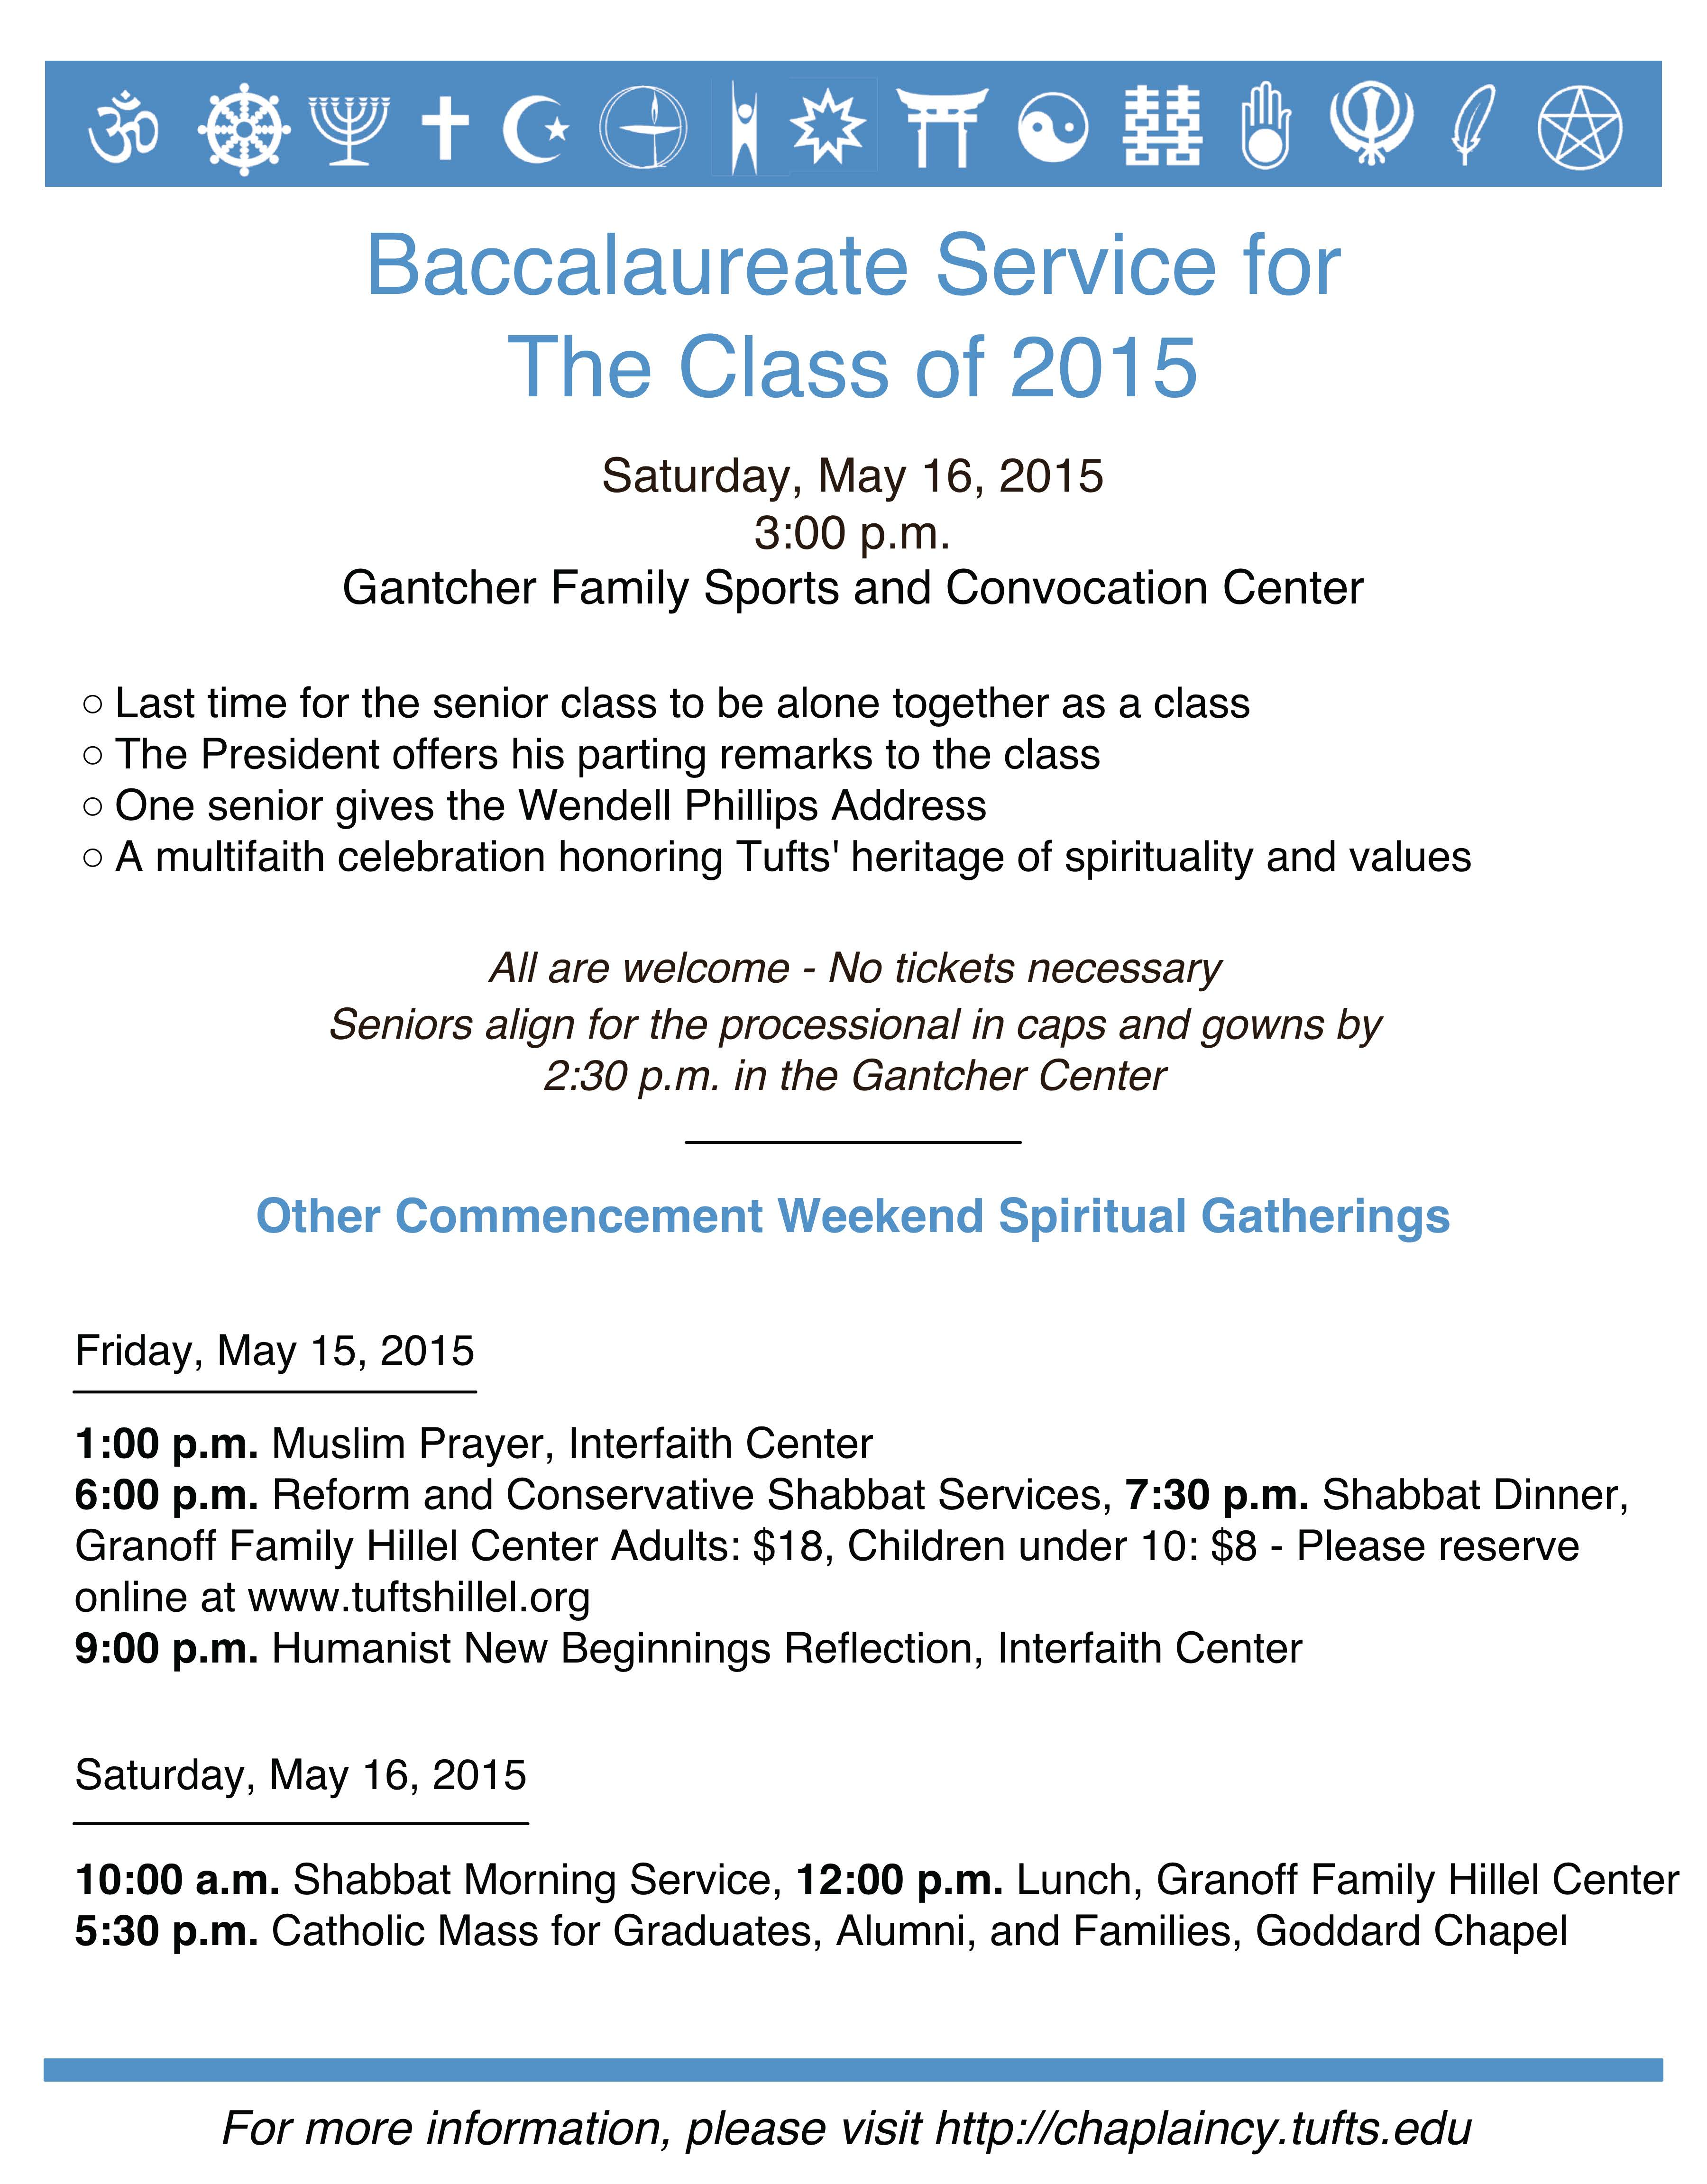 Baccalaureate Service For The Class Of 2015 Tufts